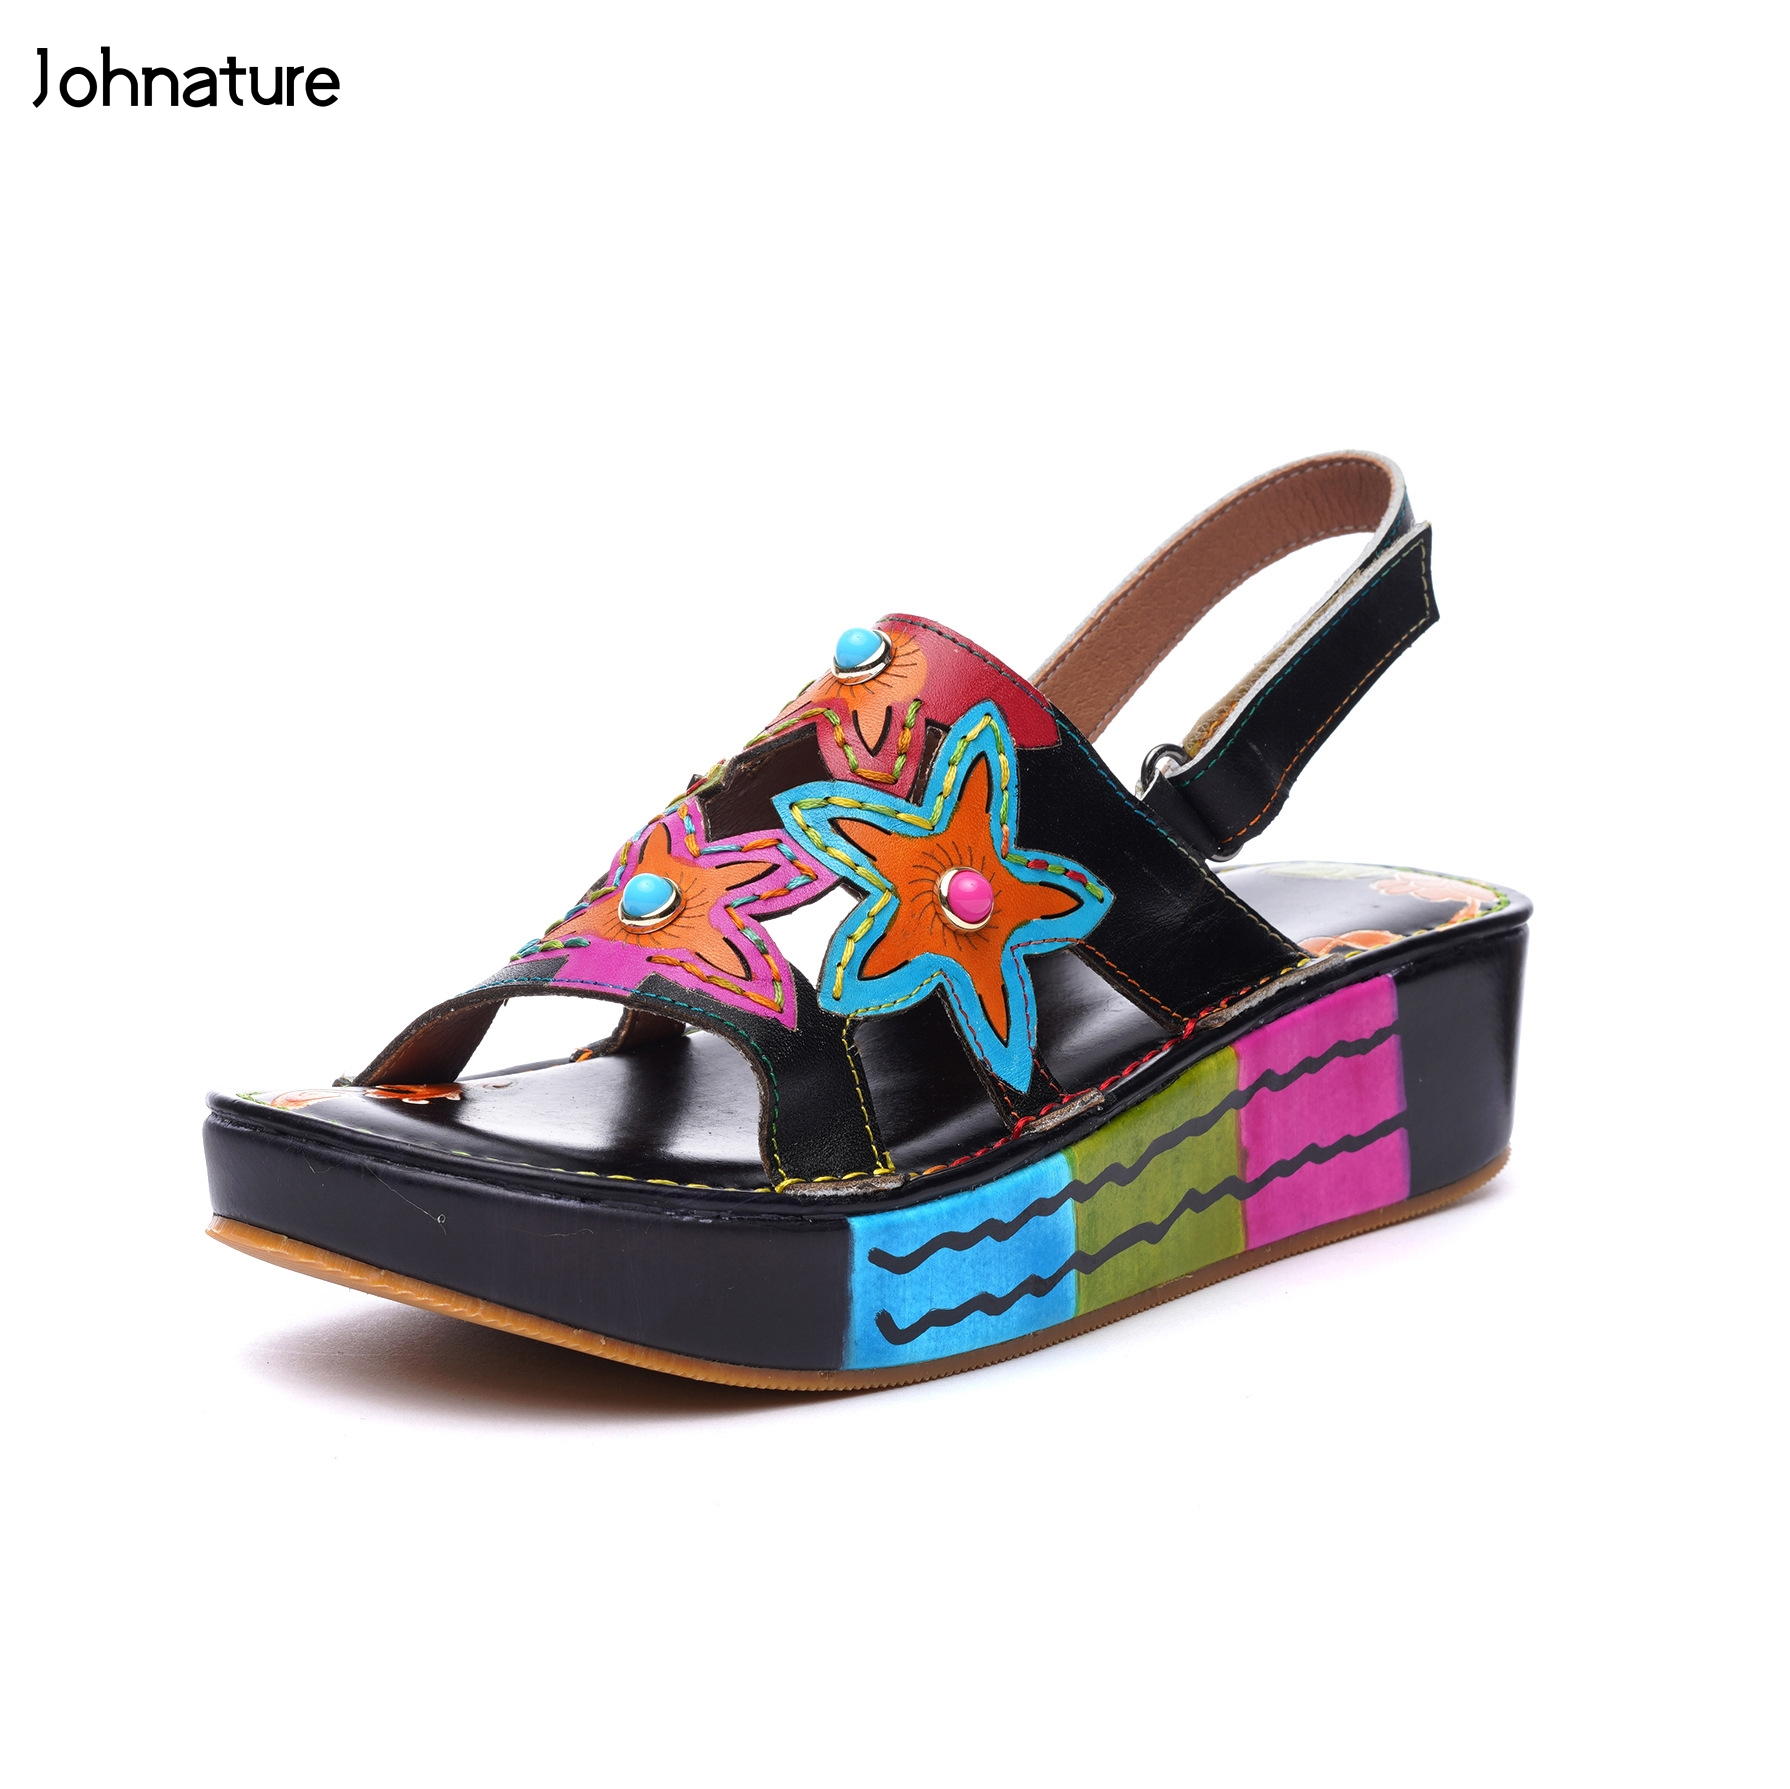 Johnature Genuine Leather New Ankle wrap Summer Sandals Casual Hook Loop Hand painted Retro Totem Wedges